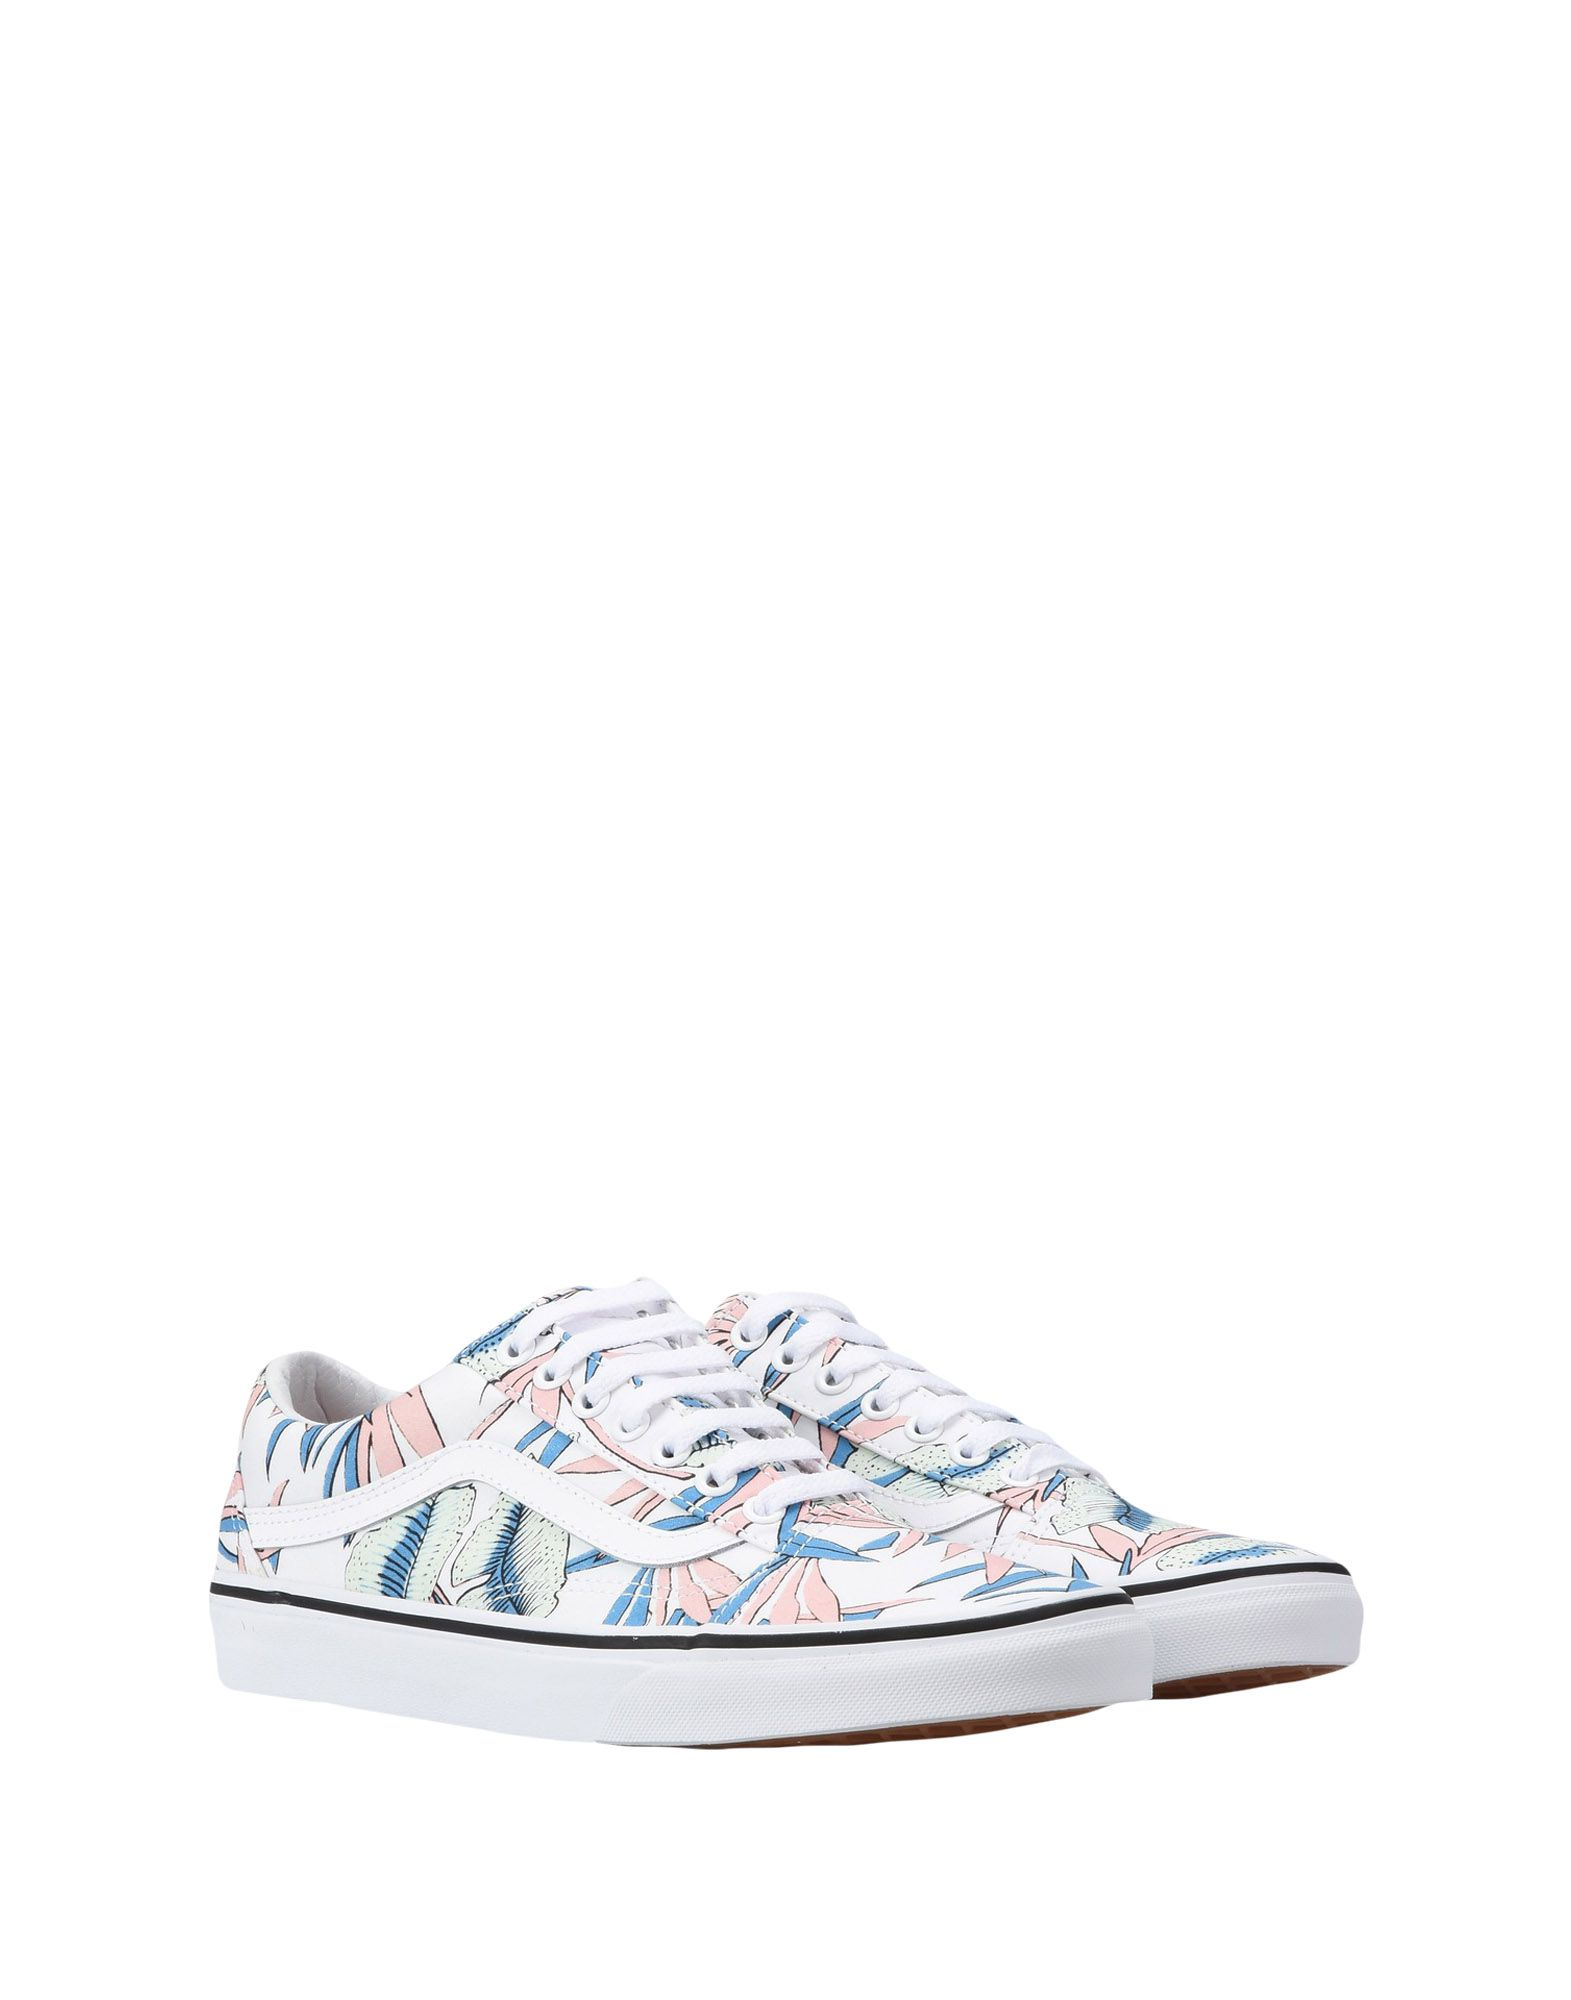 Sneakers Vans Ua Old Skool - Tropical Leaves - Femme - Sneakers Vans sur